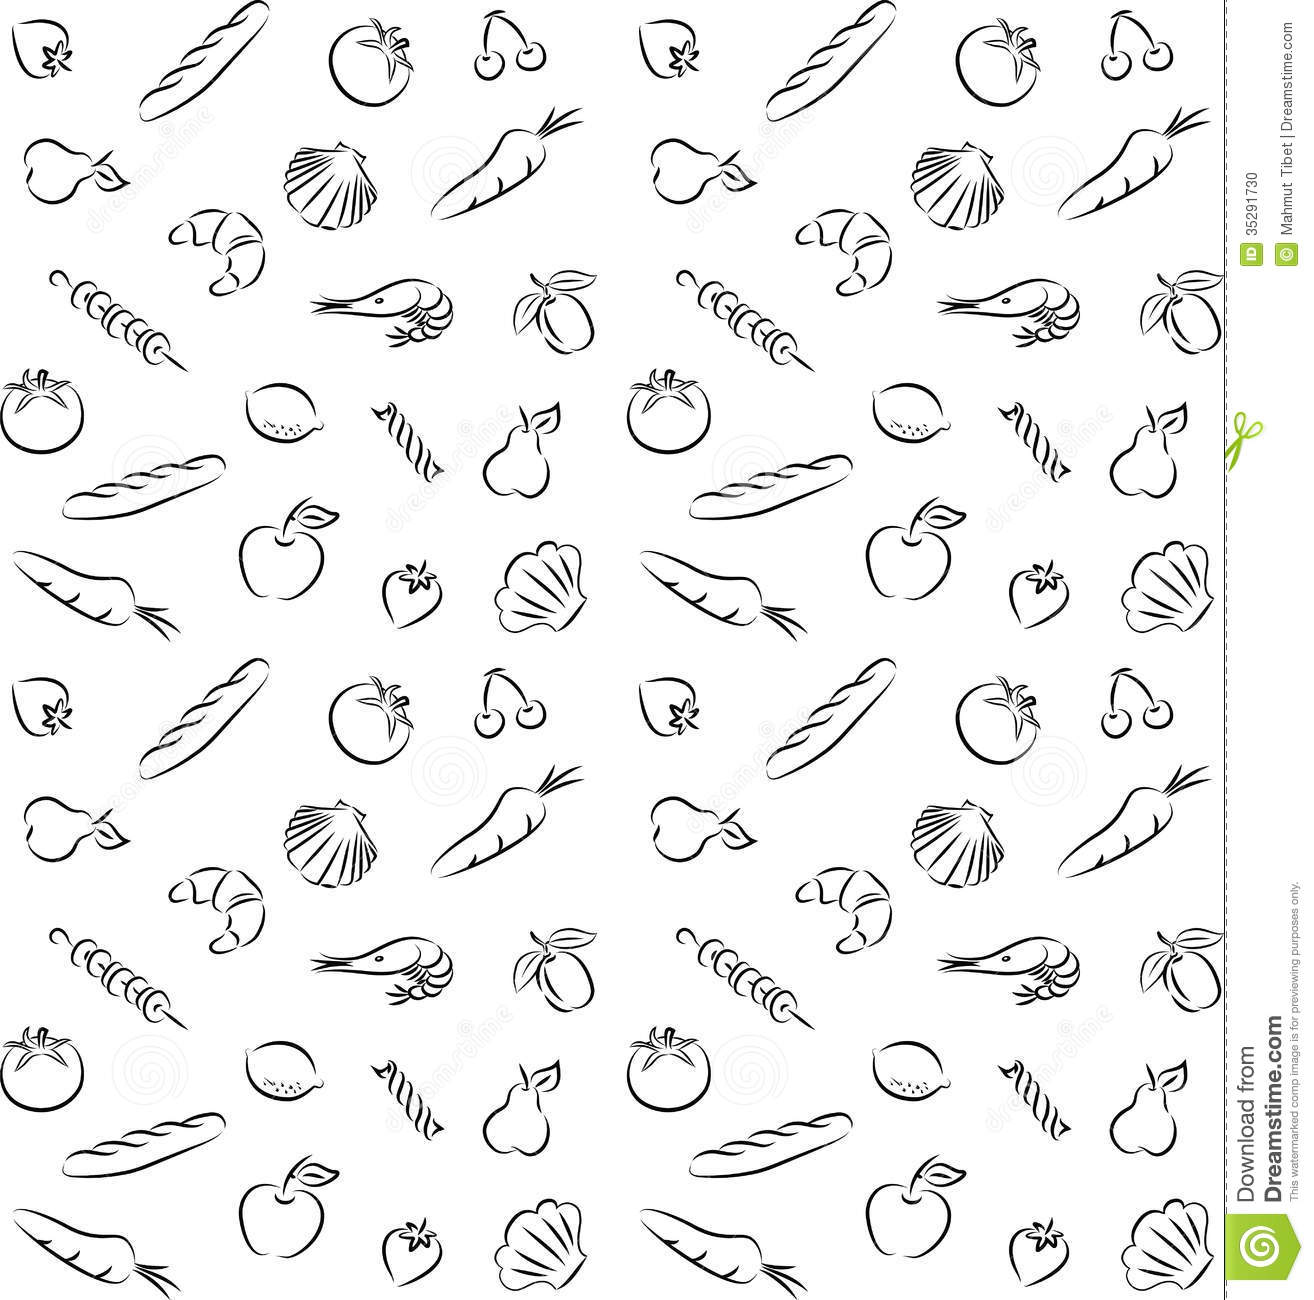 Carbohydrates Crackers Bread Cereal Rice Pasta 1496930 moreover Royalty Free Stock Photos Garlic White Vegetable White Veggie Veggie Cartoon Image33434068 together with Cartoon Raisins Vector 382951 additionally Royalty Free Stock Photo France I Love Paris Vector Icons Set French People Isolated White Image39592015 together with Stock Illustration Wheat Icon Vector Black Illustration White Image47244103. on bread illustration